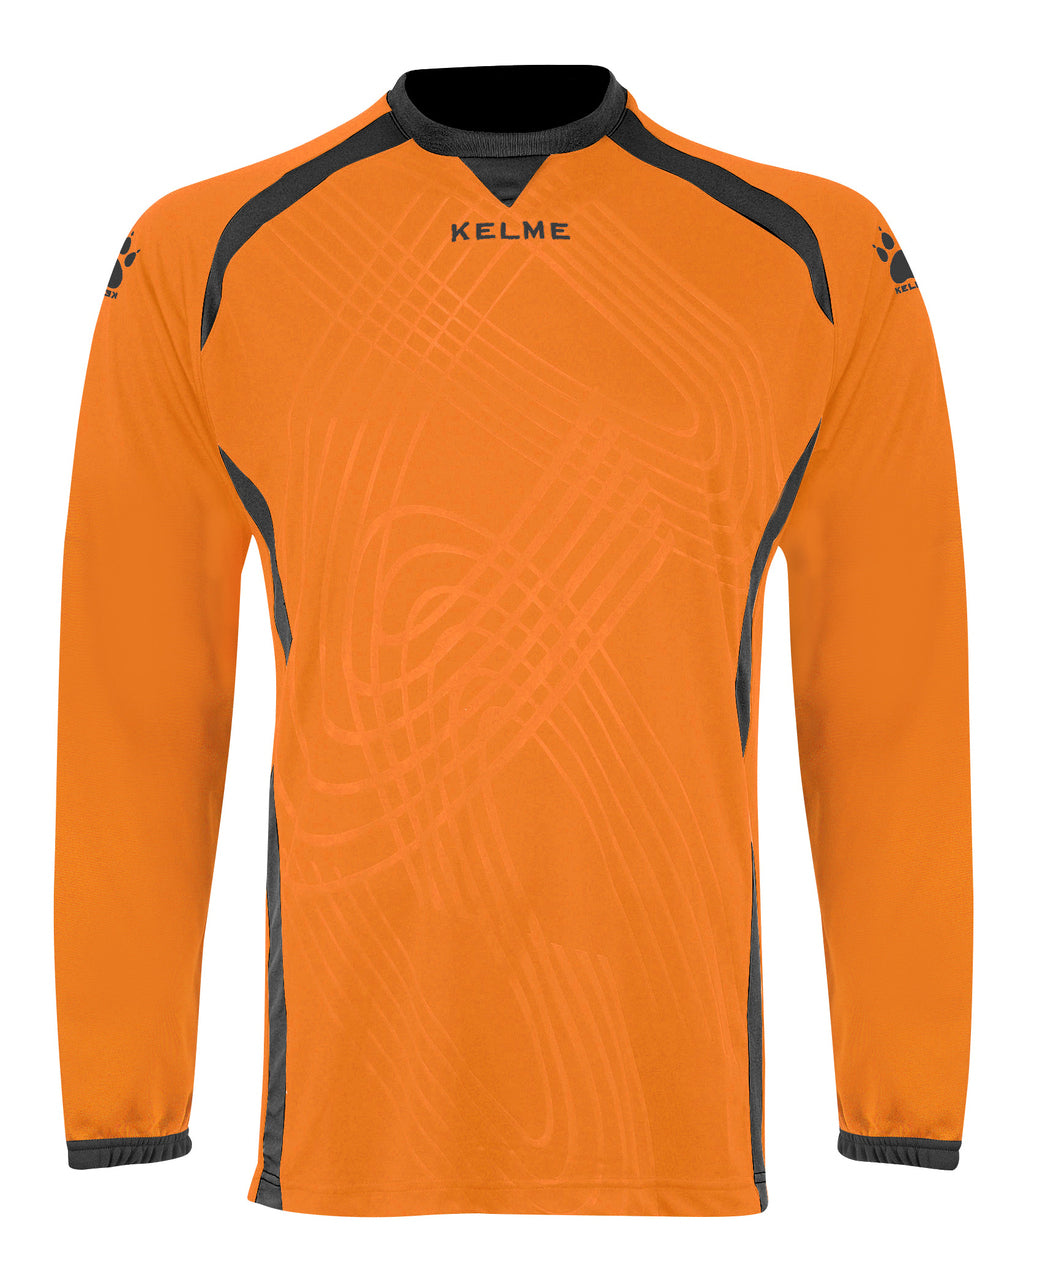 Kelme Attack Orange Goalkeeper Jersey - Youth